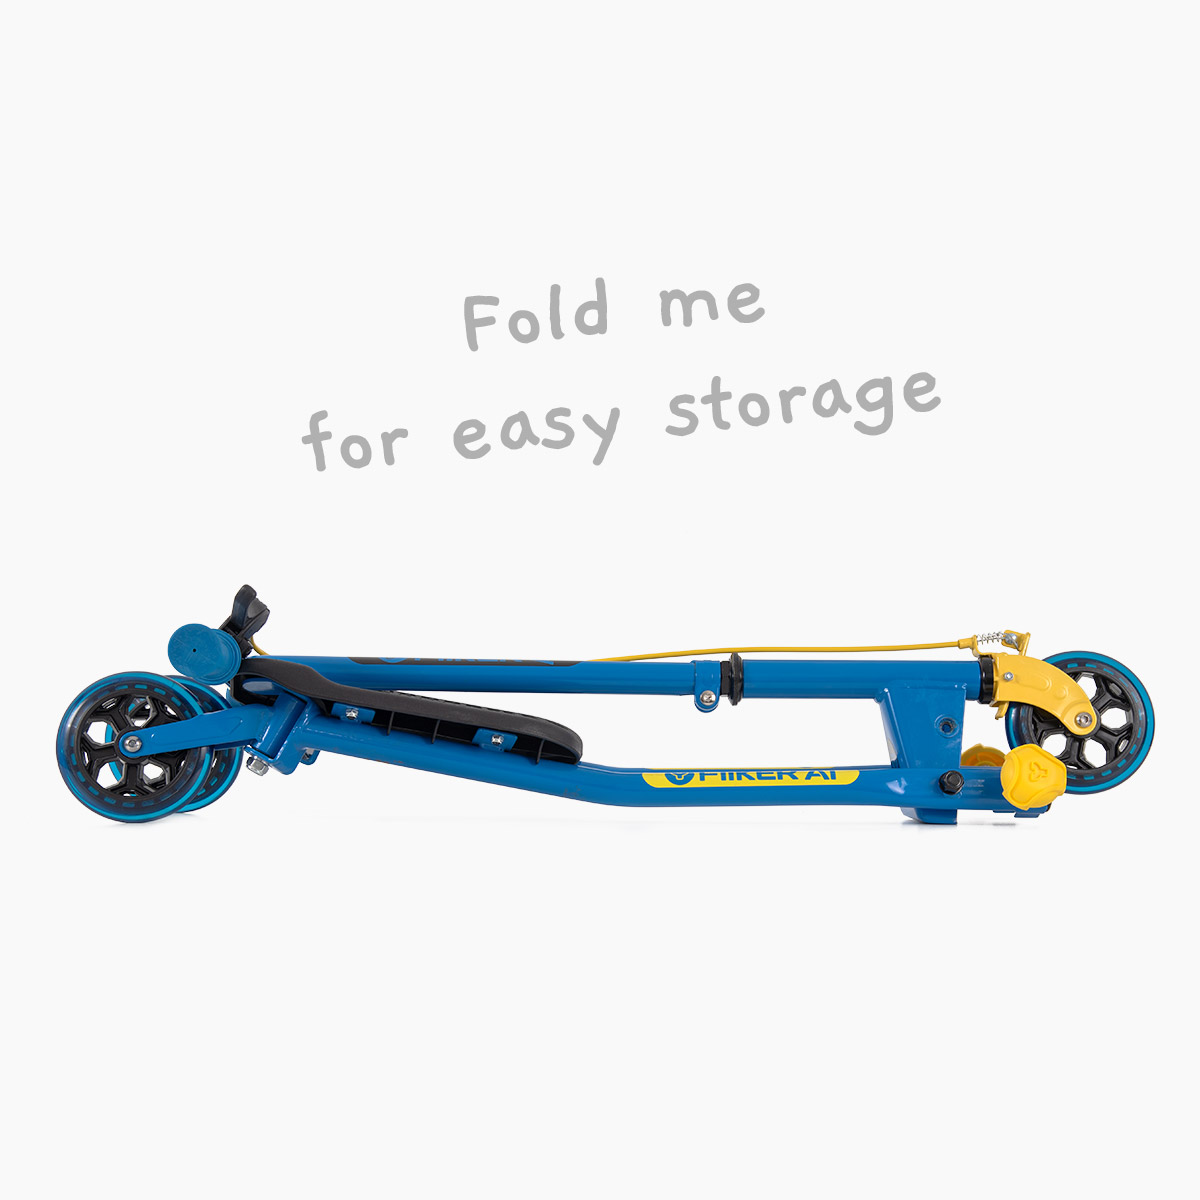 Folding system for storage